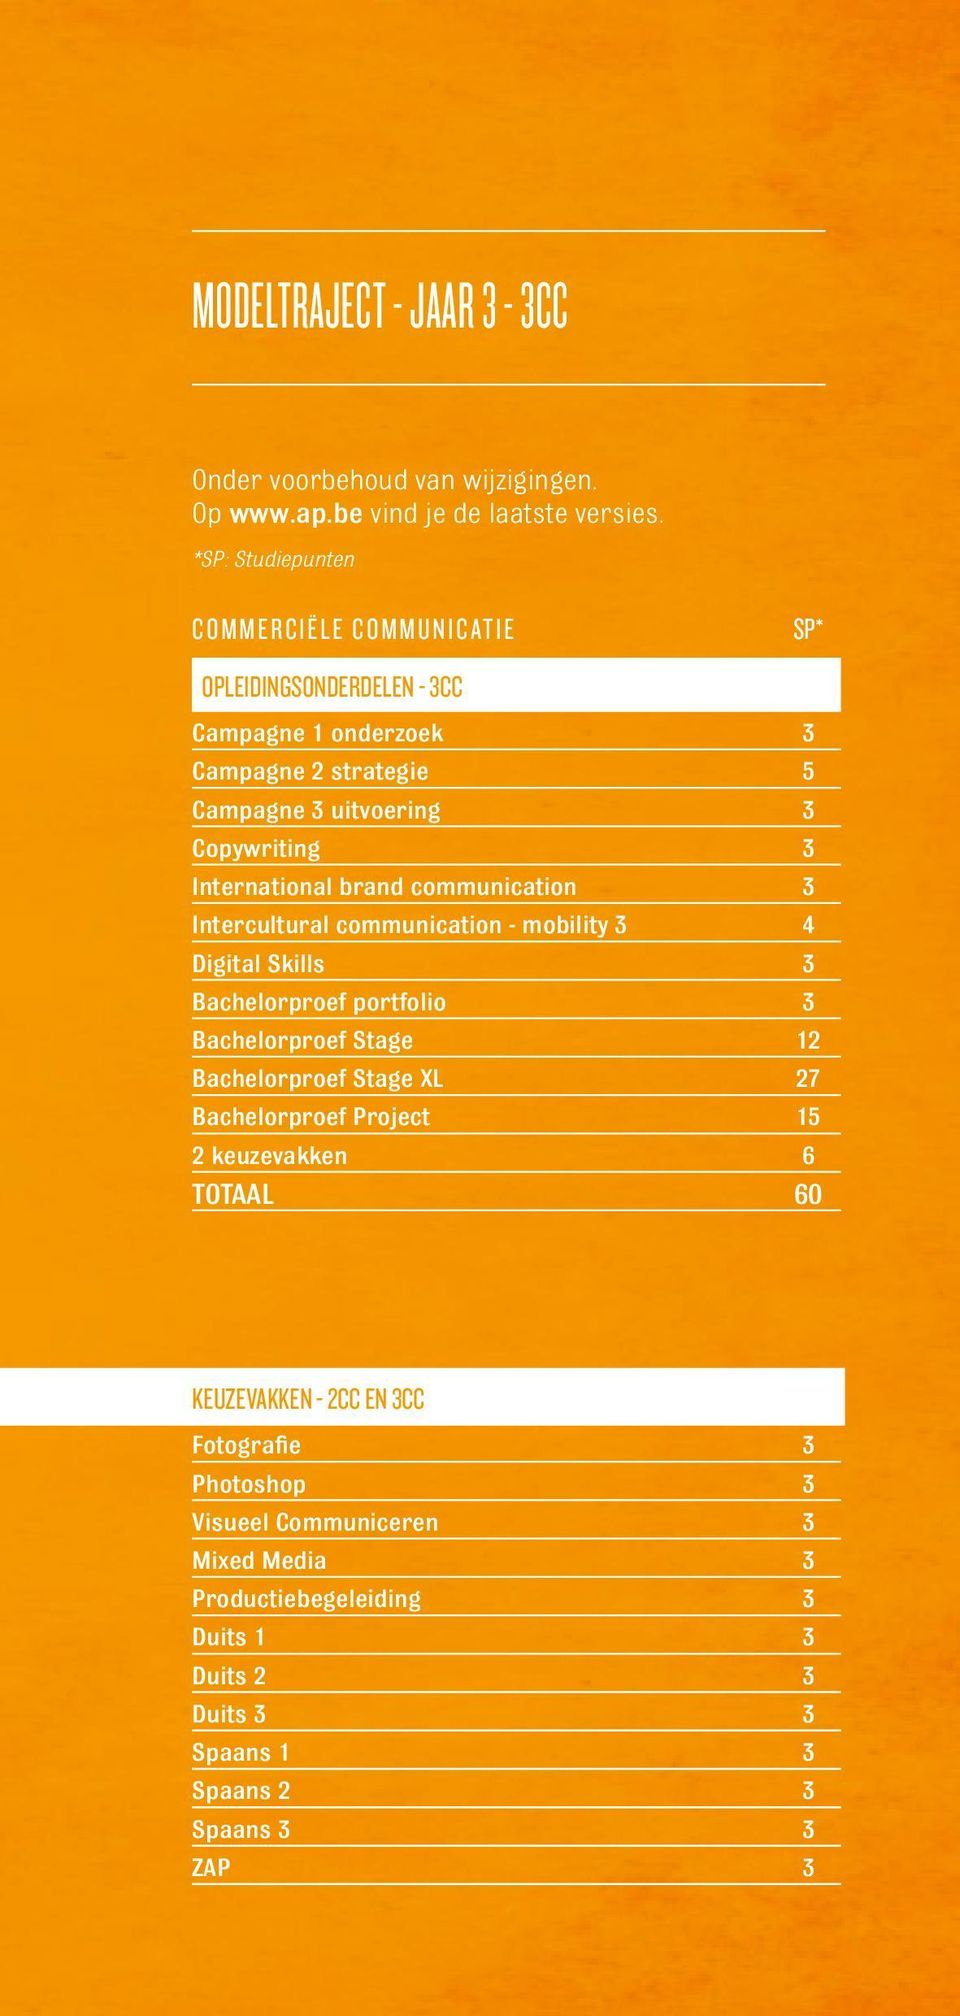 International brand communication 3 Intercultural communication - mobility 3 4 Digital Skills 3 Bachelorproef portfolio 3 Bachelorproef Stage 12 Bachelorproef Stage